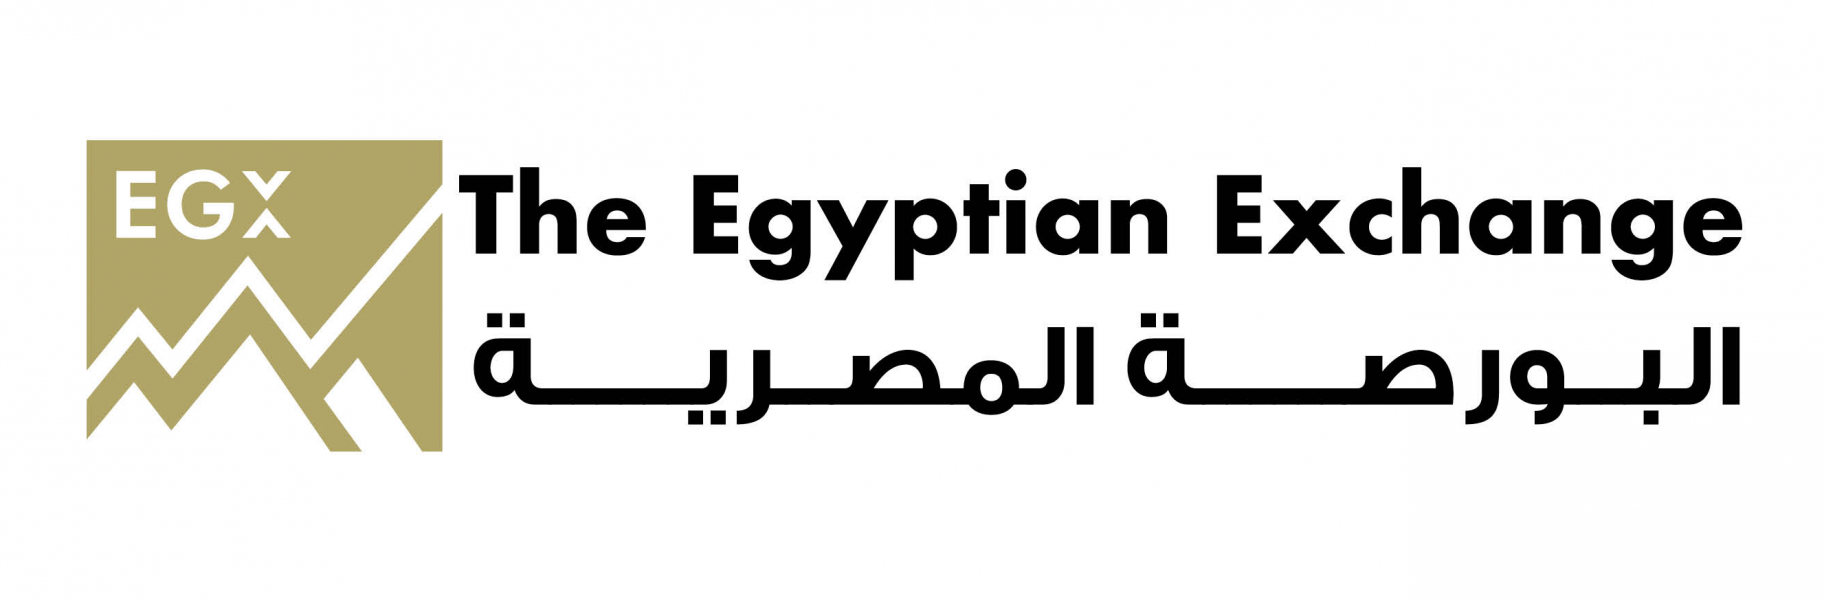 The-Egyptian-Exchange-Chairman-Participates-in-Bri